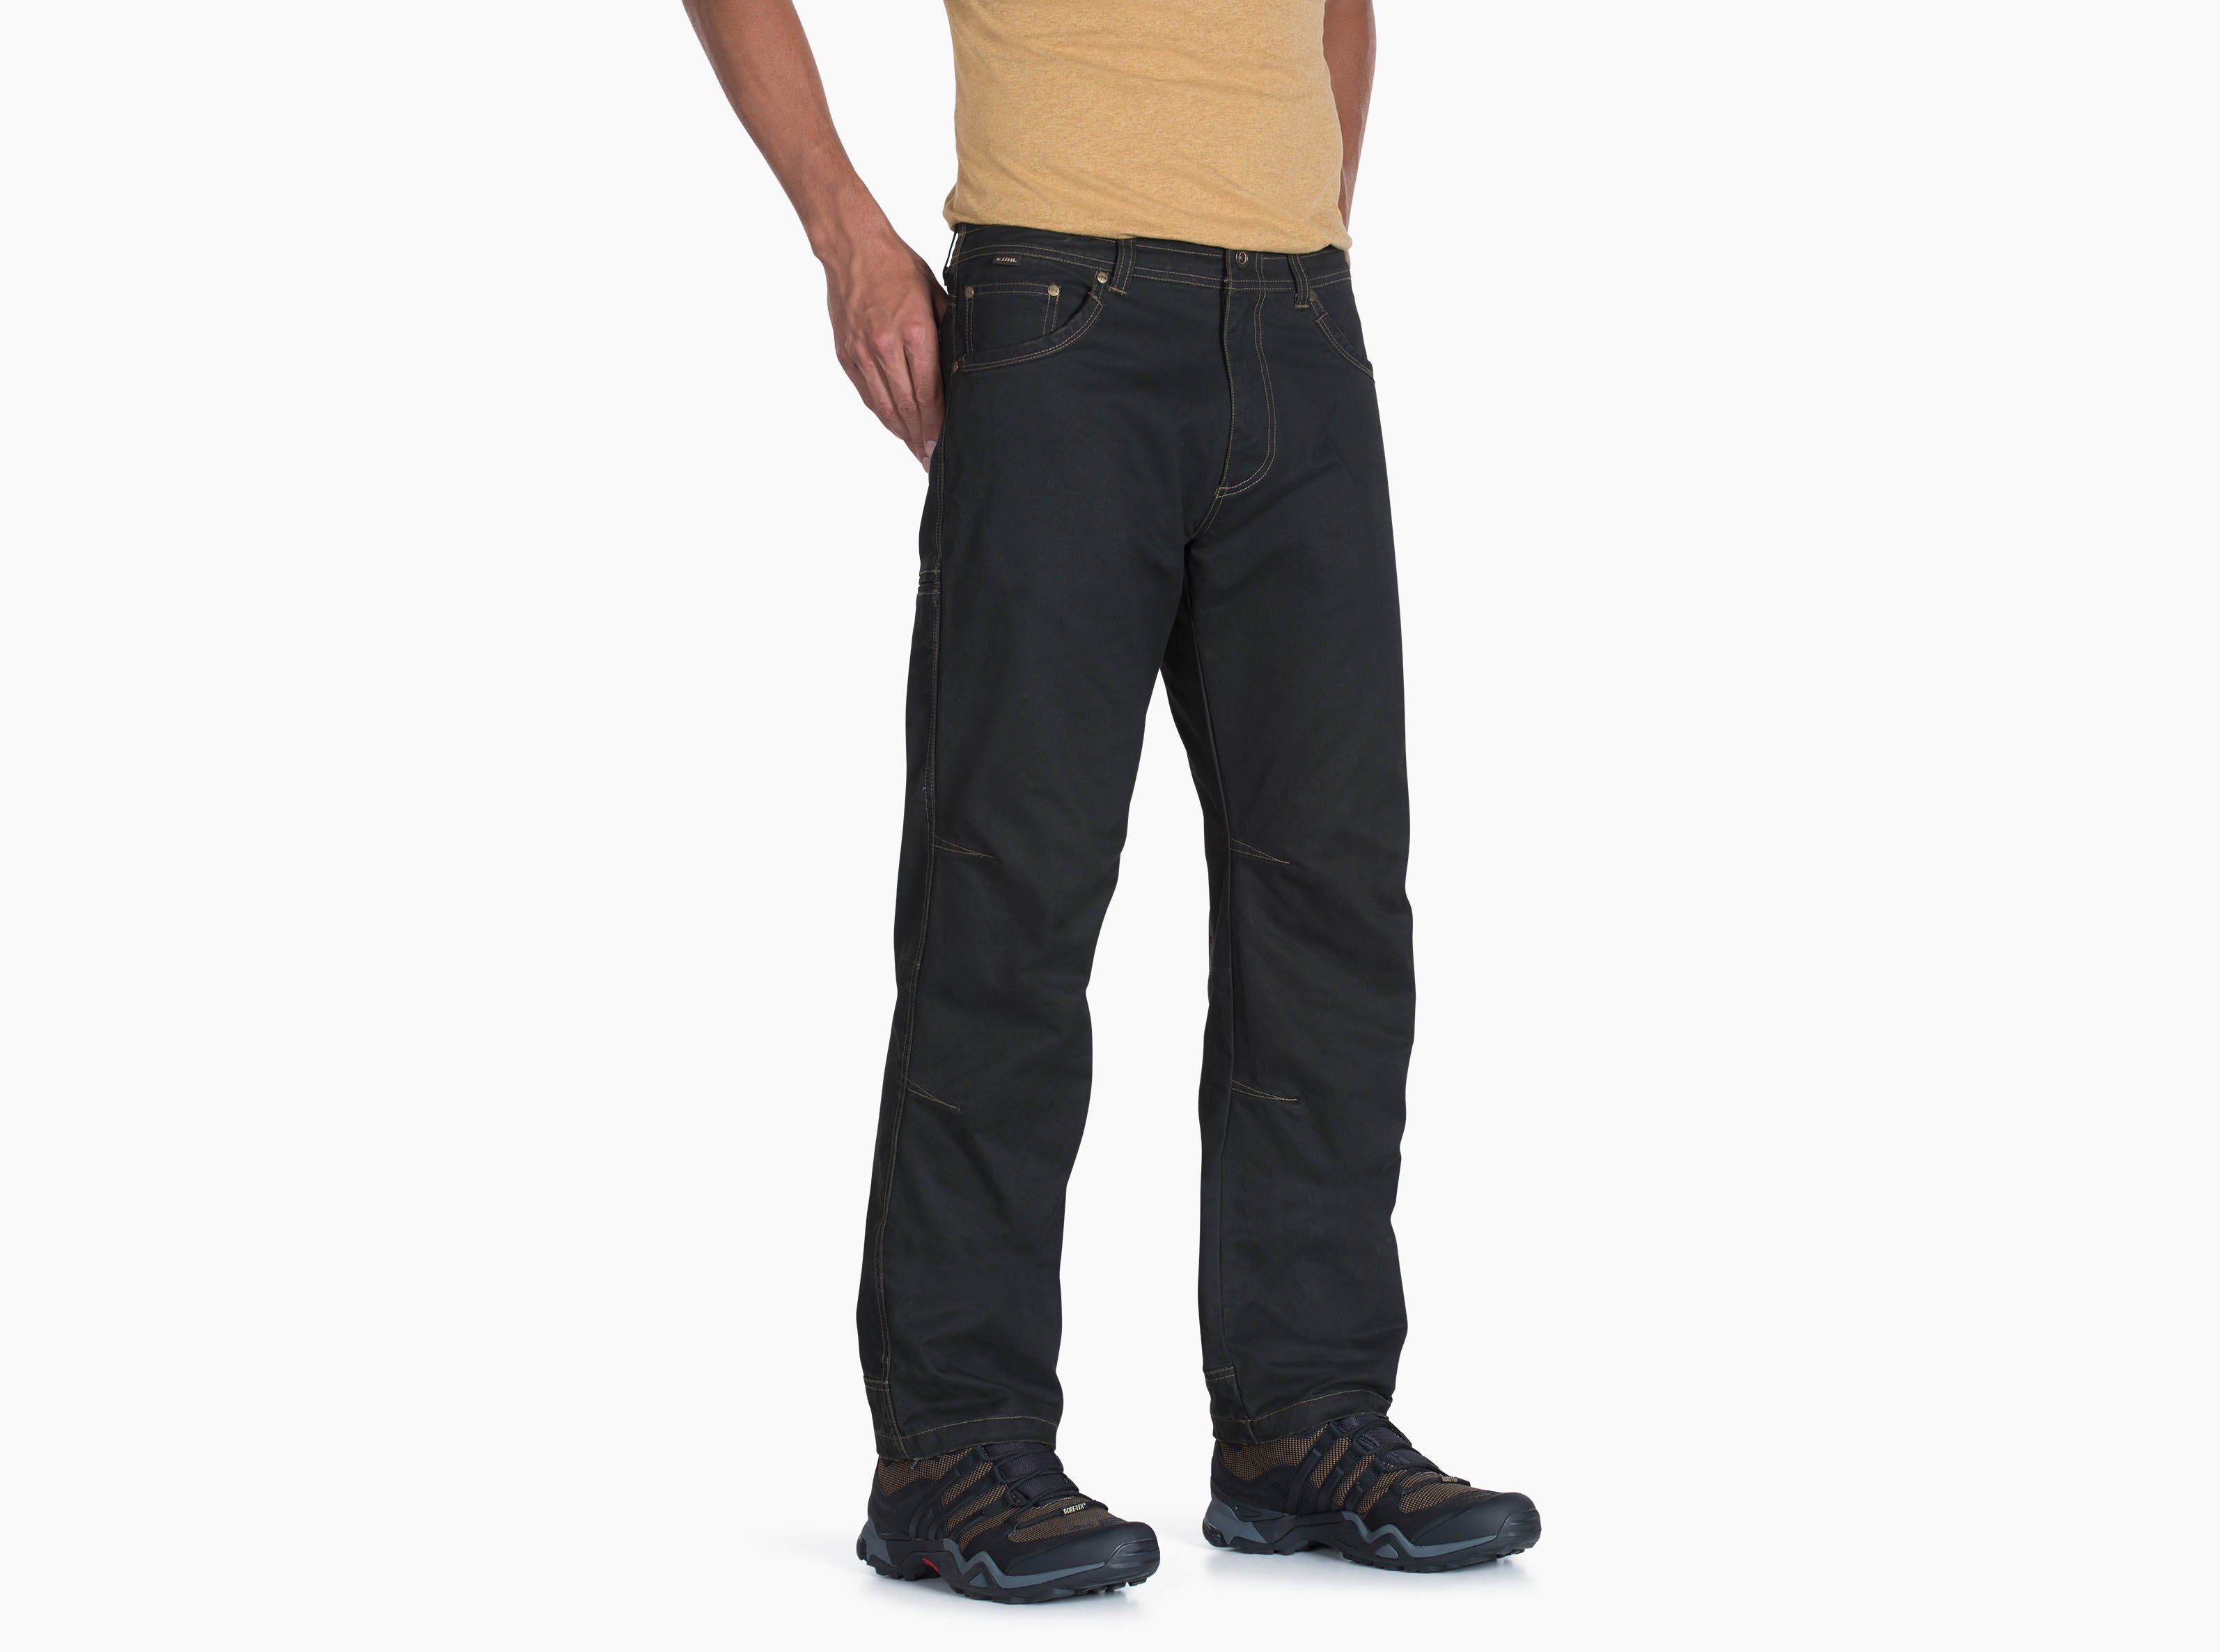 'Kuhl' Hot Rydr Lined Pants - Espresso